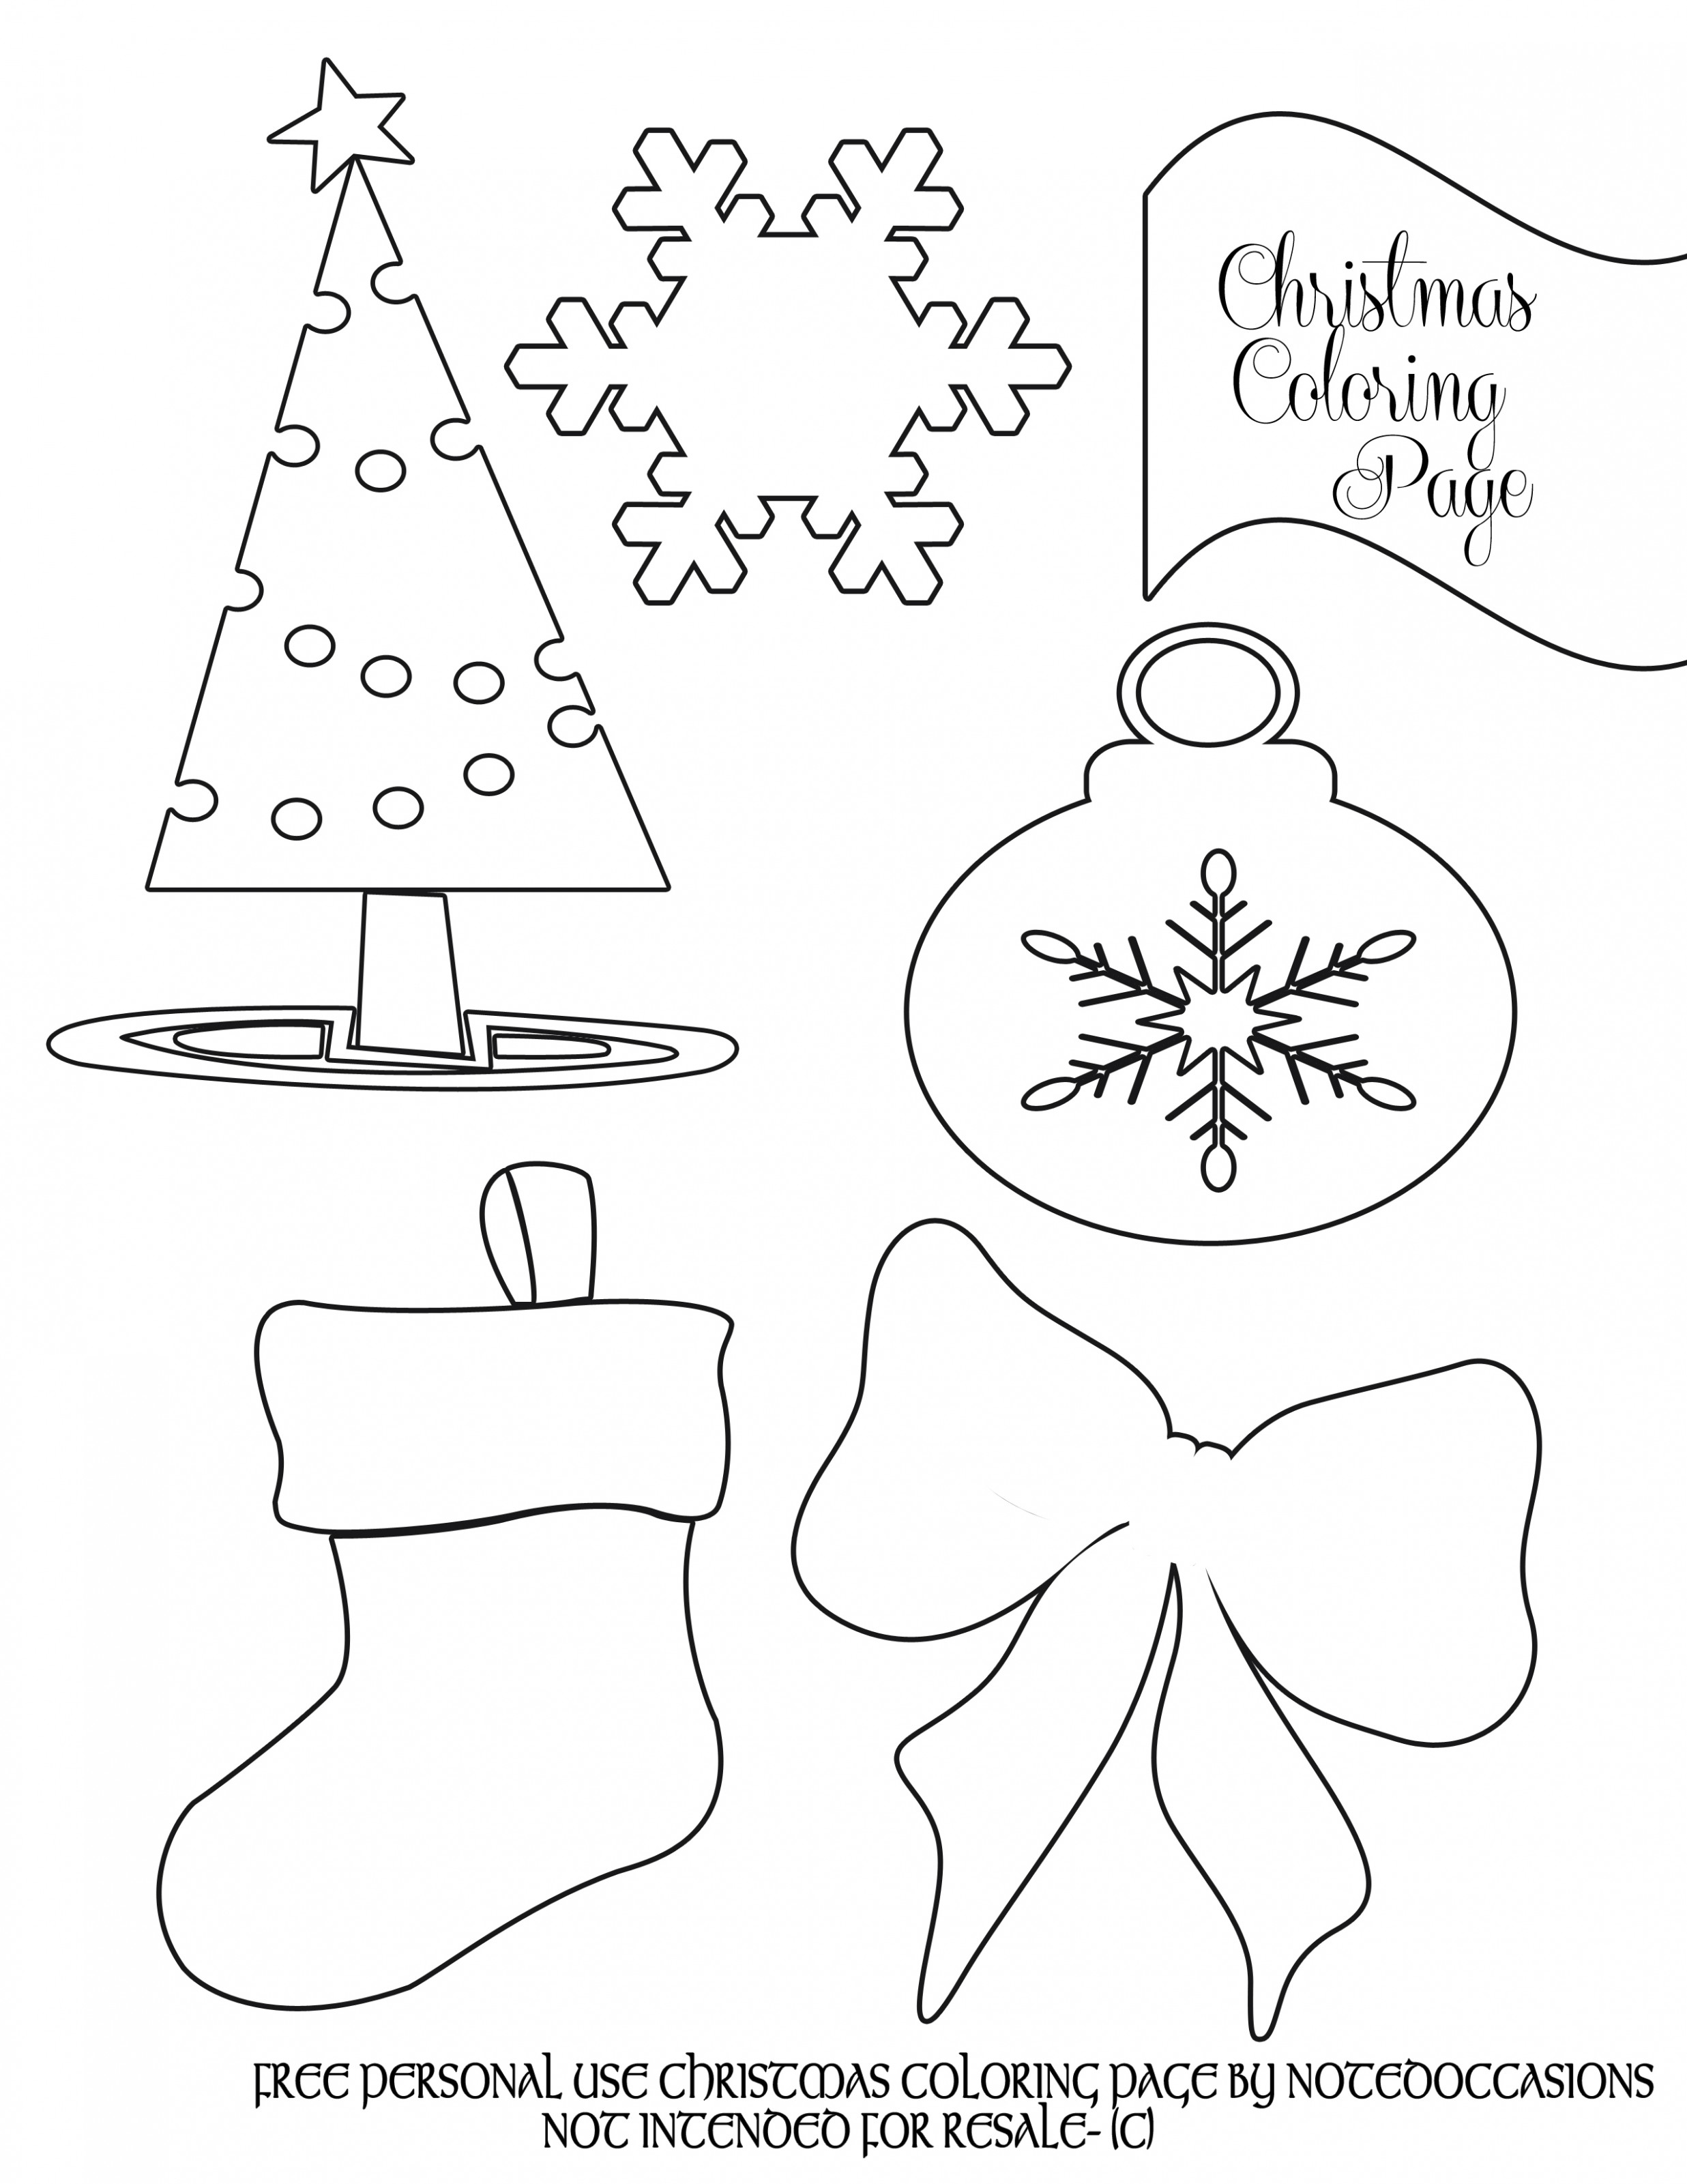 Christmas Coloring Pages For Elementary School | Murderthestout – Christmas Coloring Pages For Elementary School